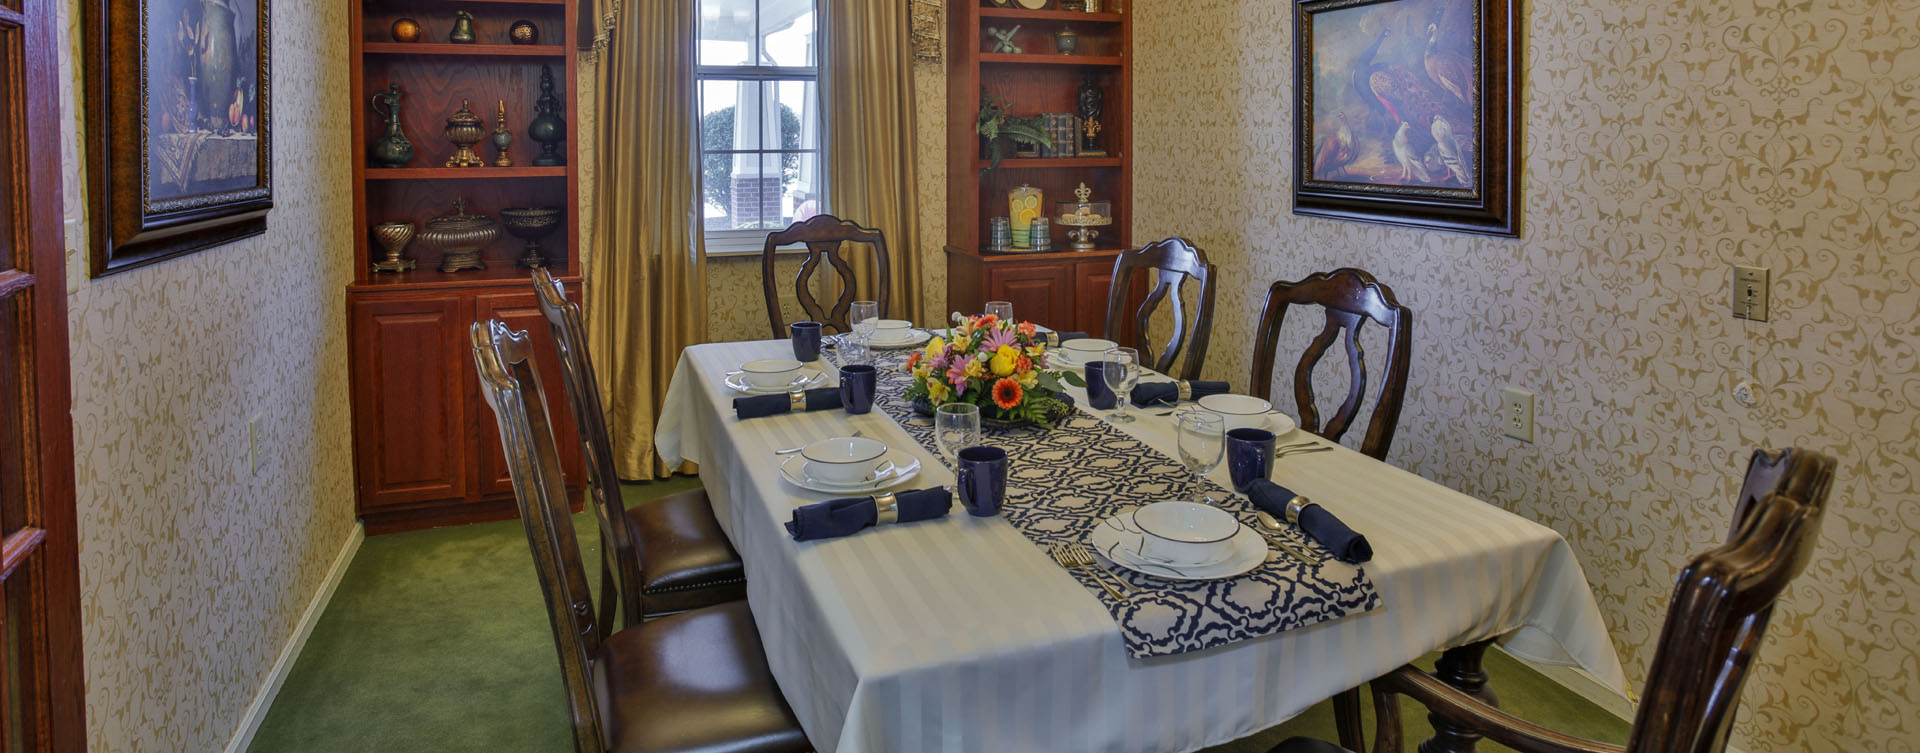 Have fun with themed and holiday meals in the private dining room at Bickford of Lafayette